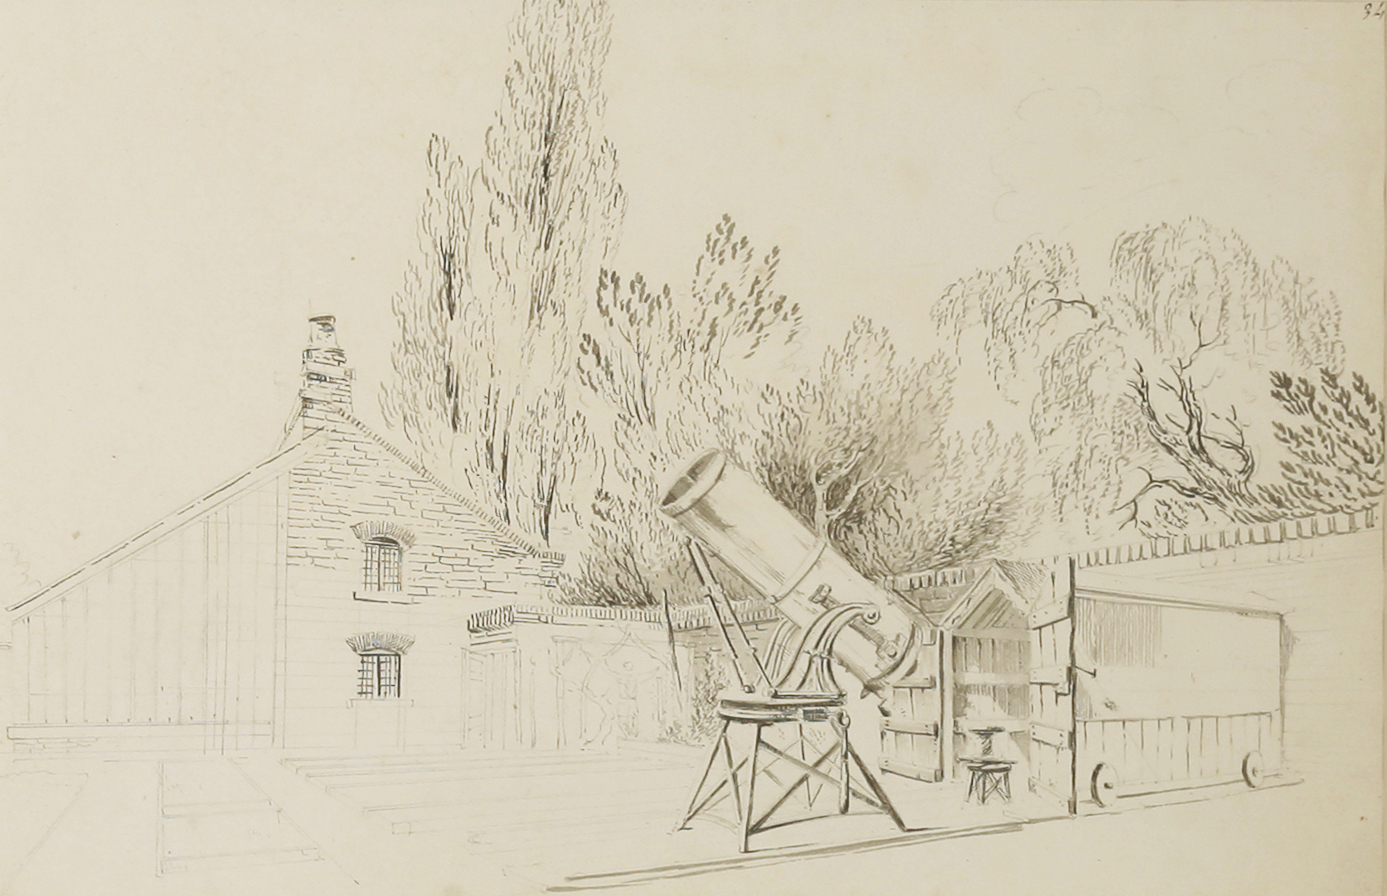 'A Telescope in the Garden at North Mymms'